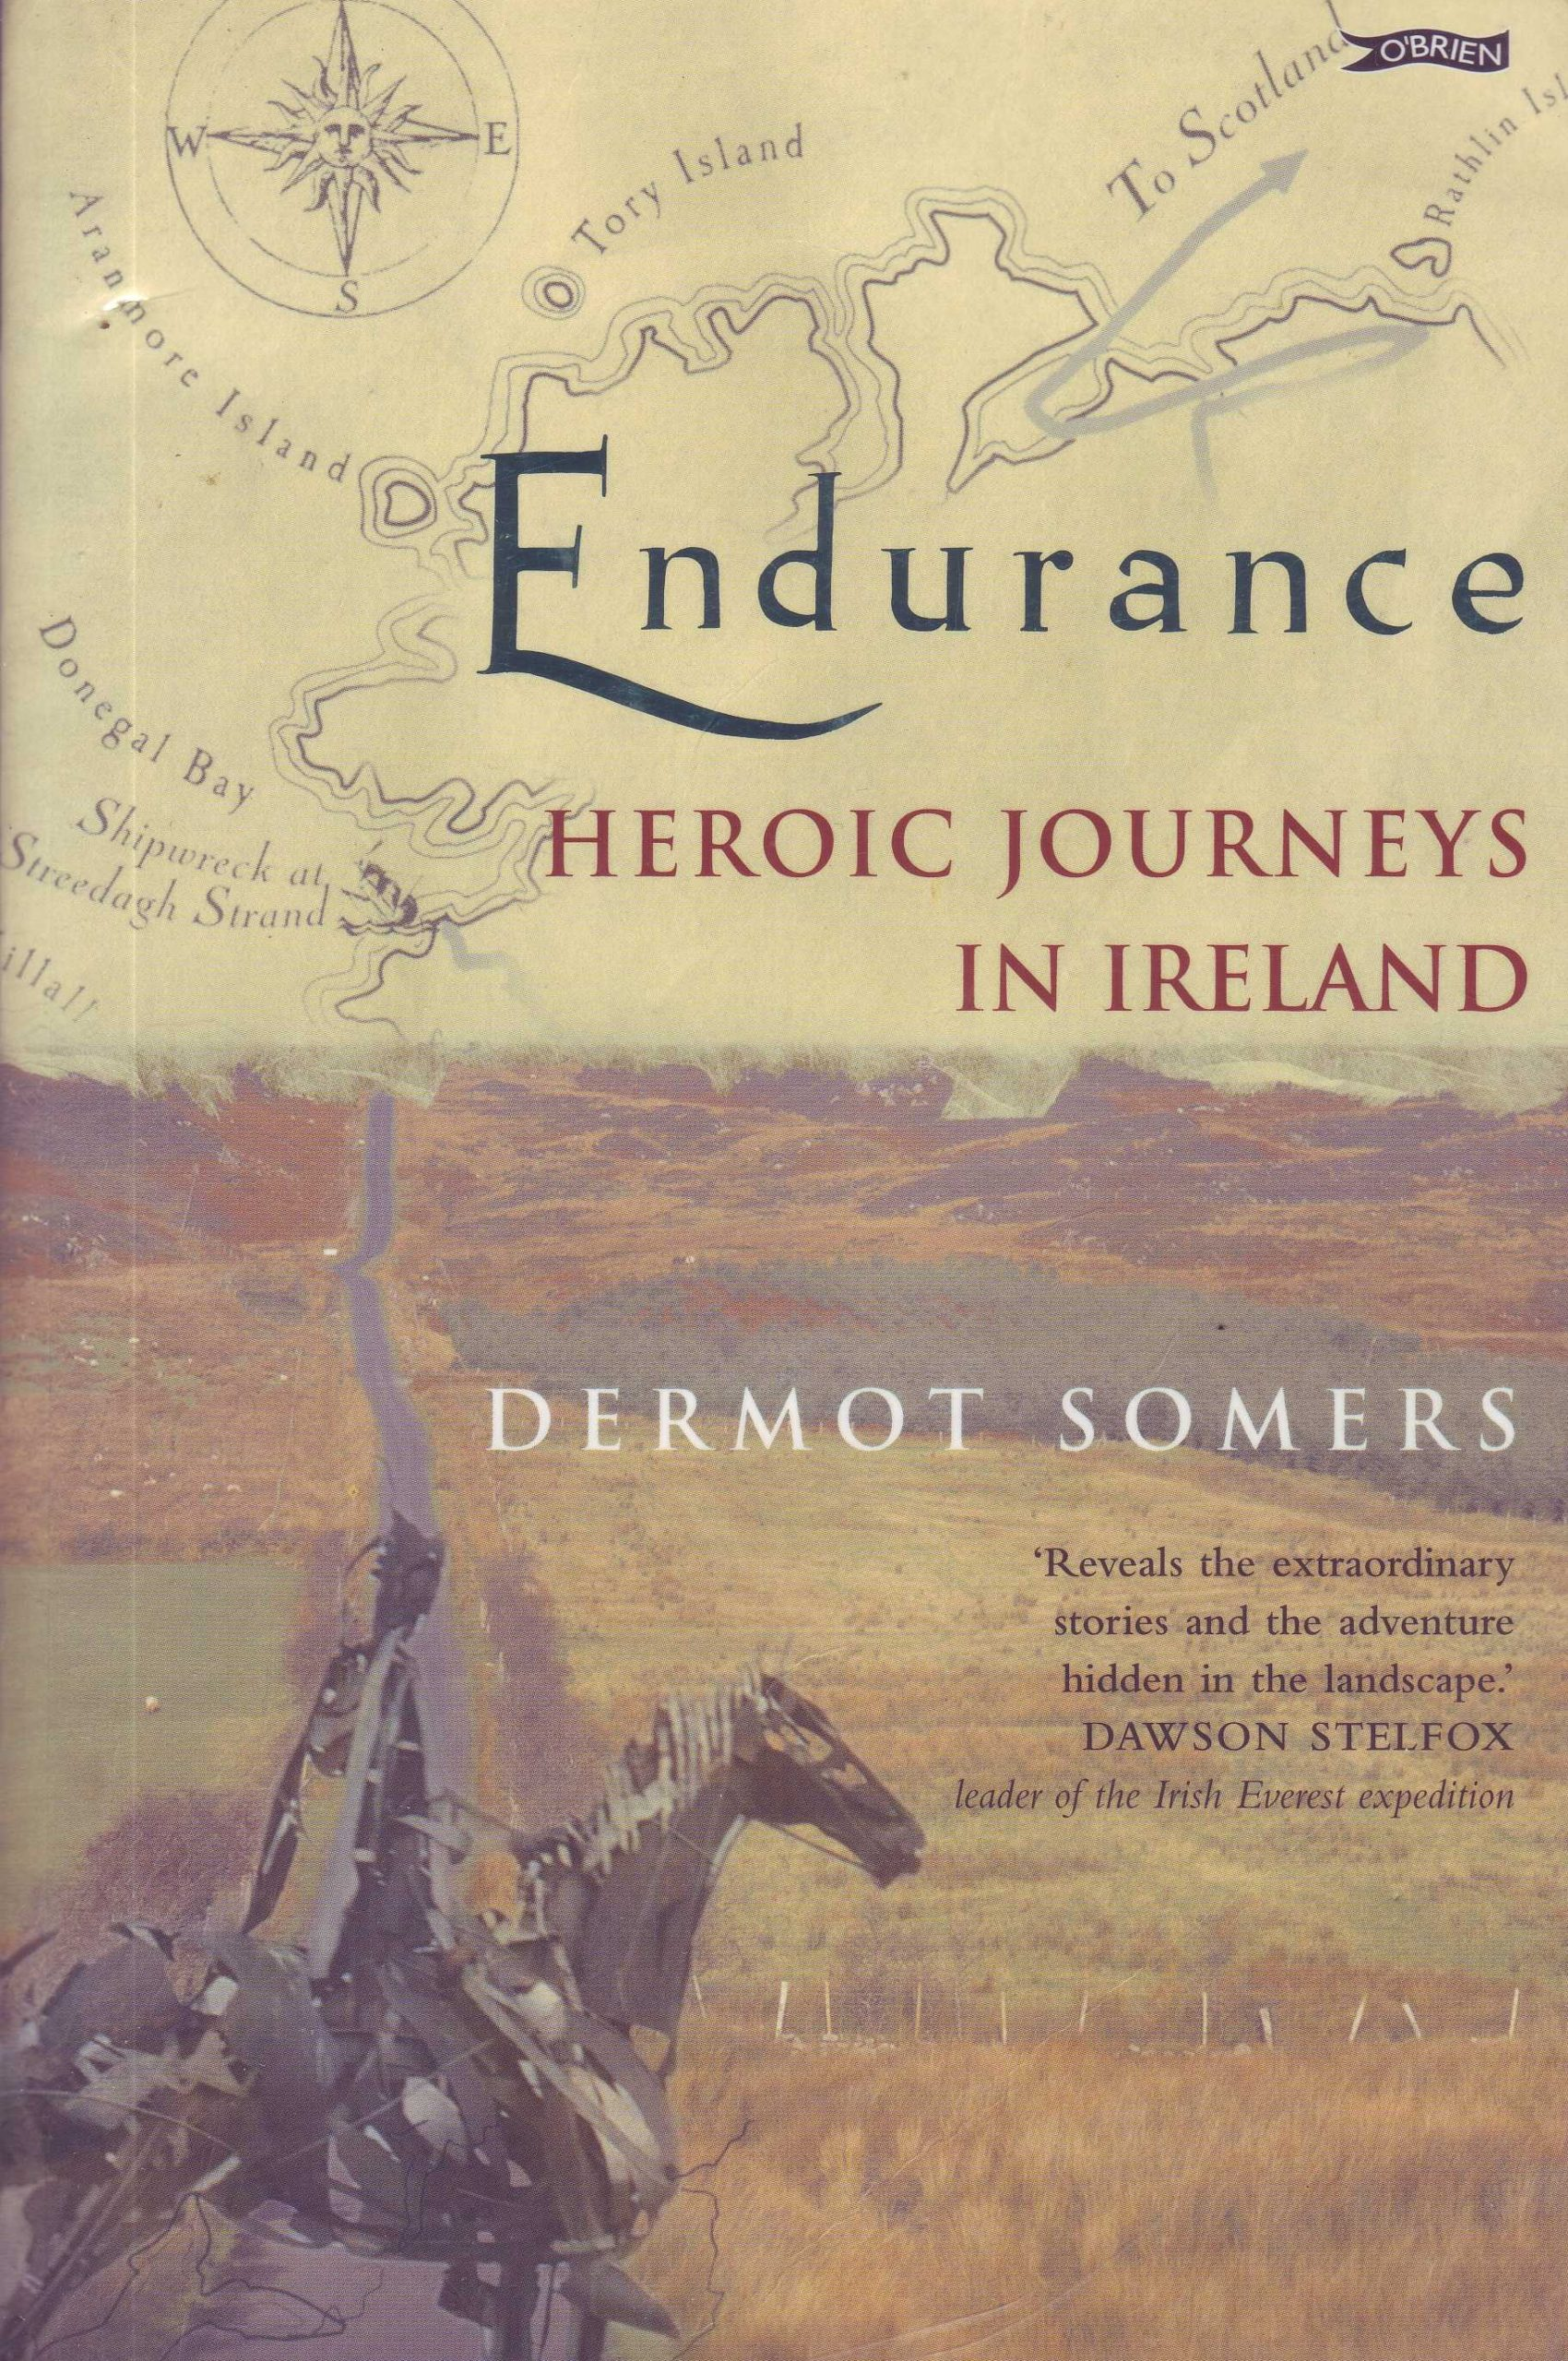 Endurance - Heroic Journeys in Ireland by Dermot Somers